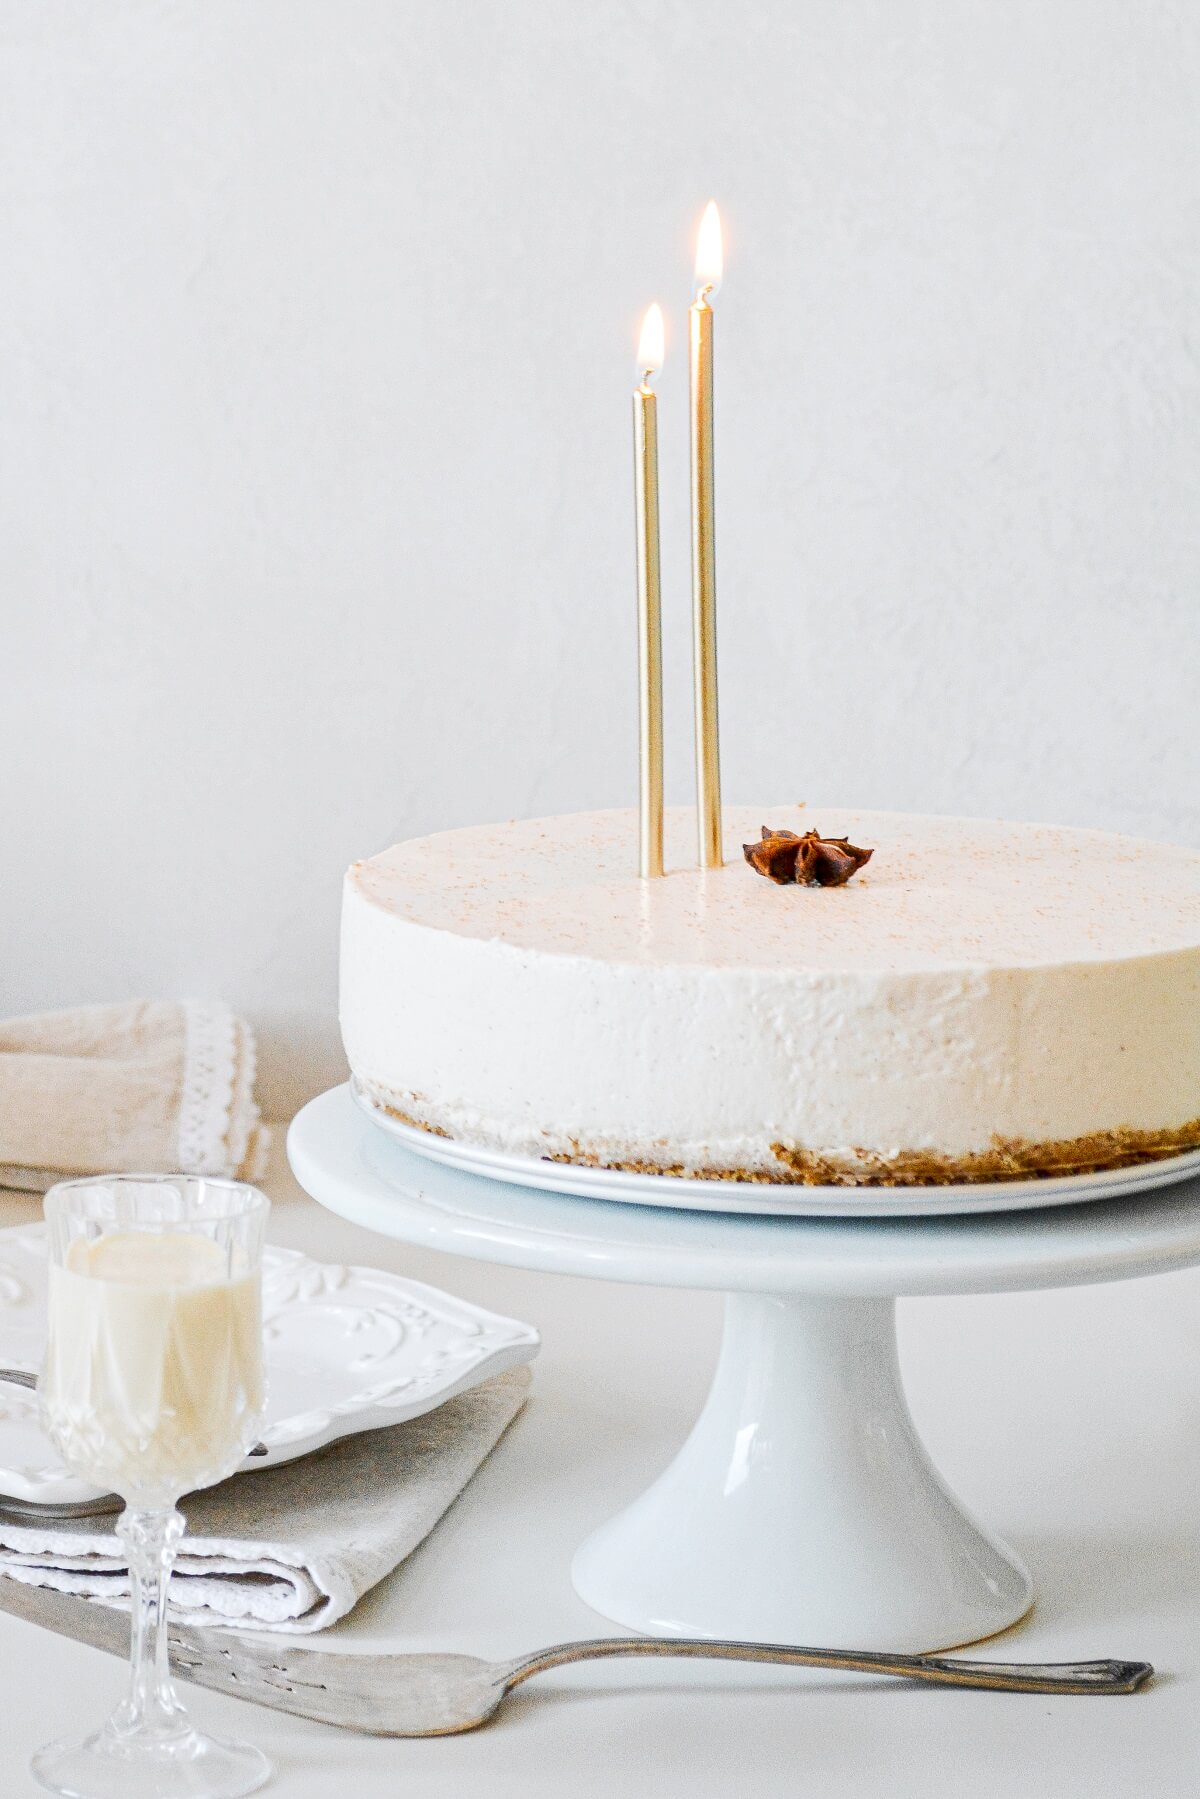 Eggnog cheesecake with two gold candles.